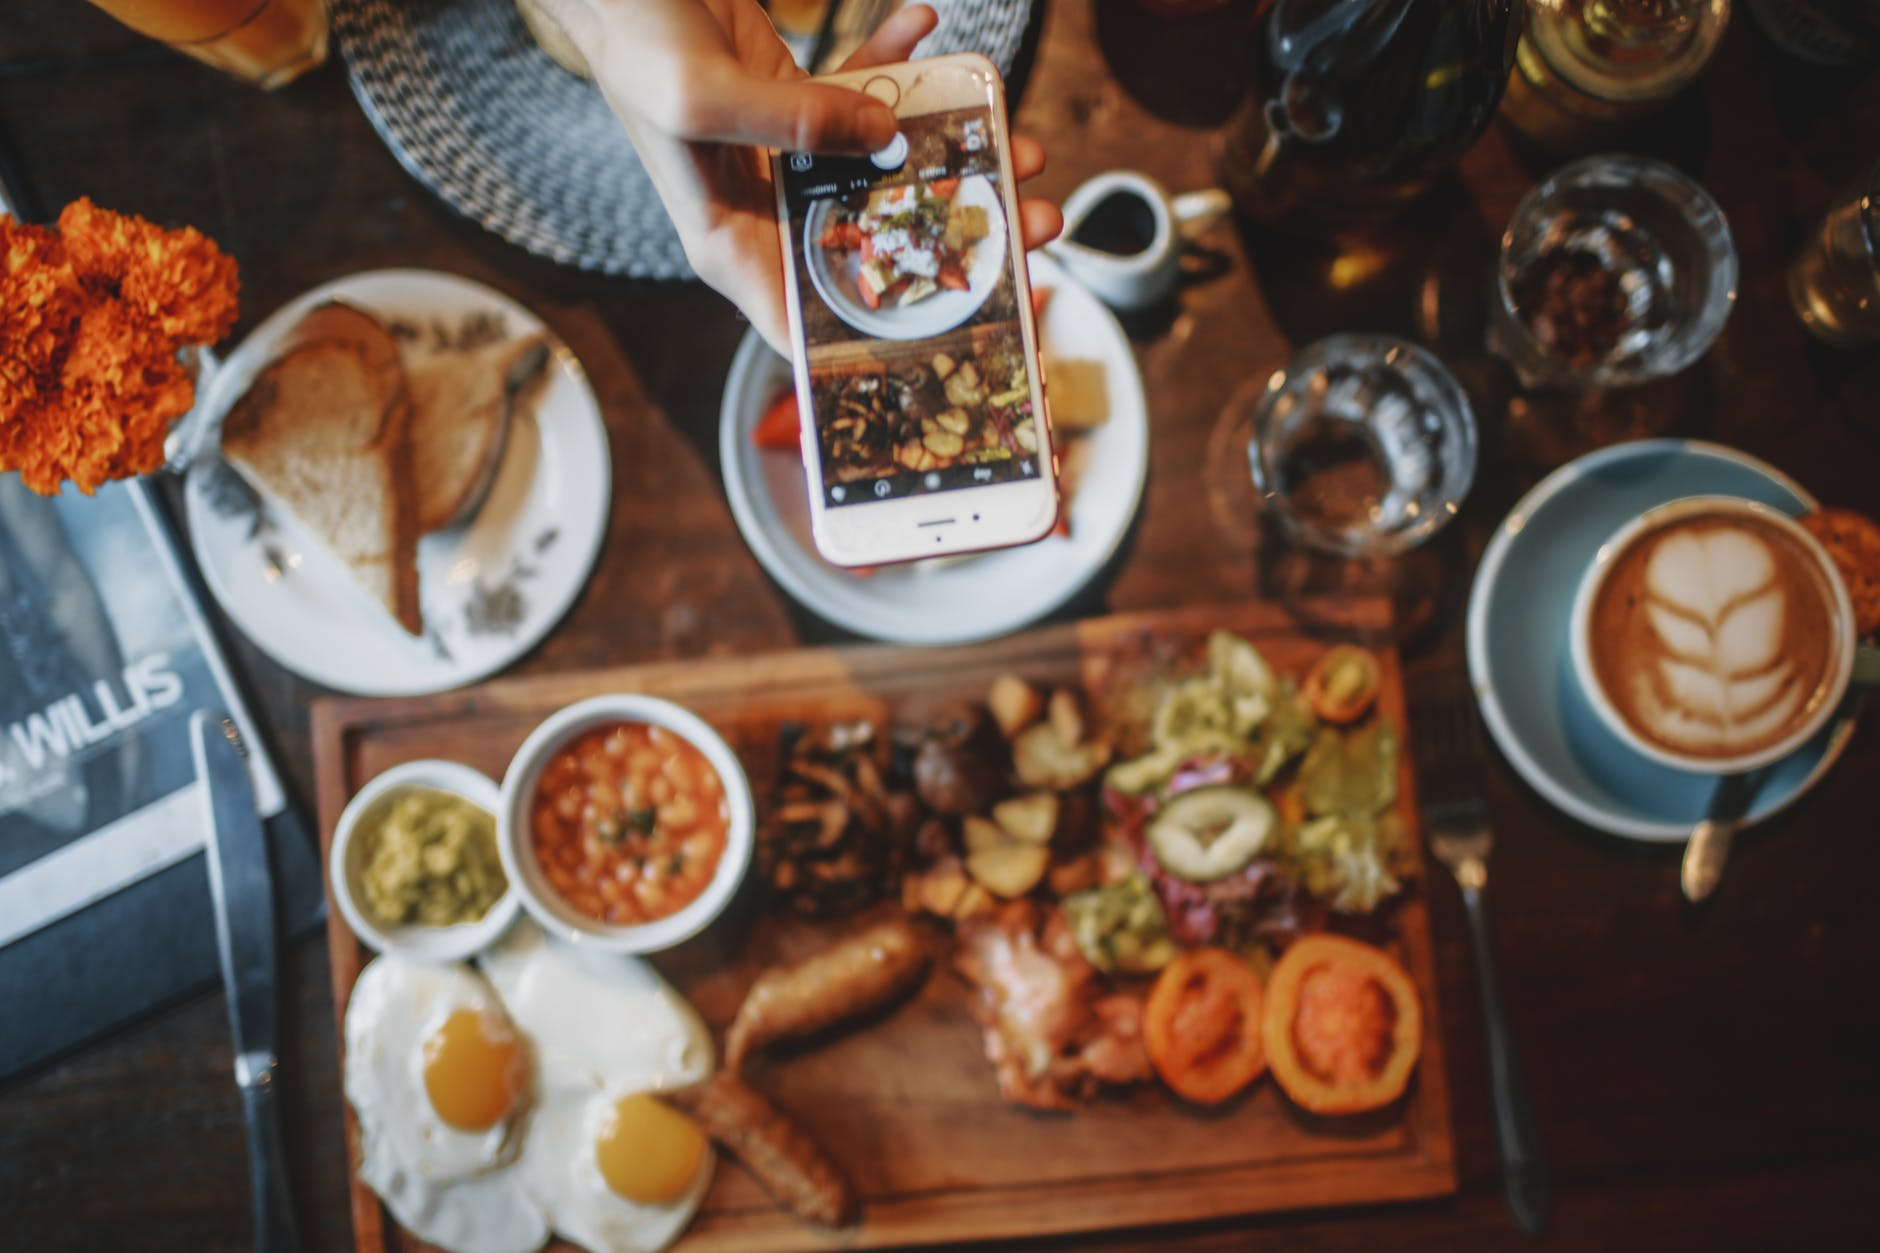 10 Must-Have Apps for Food Lovers